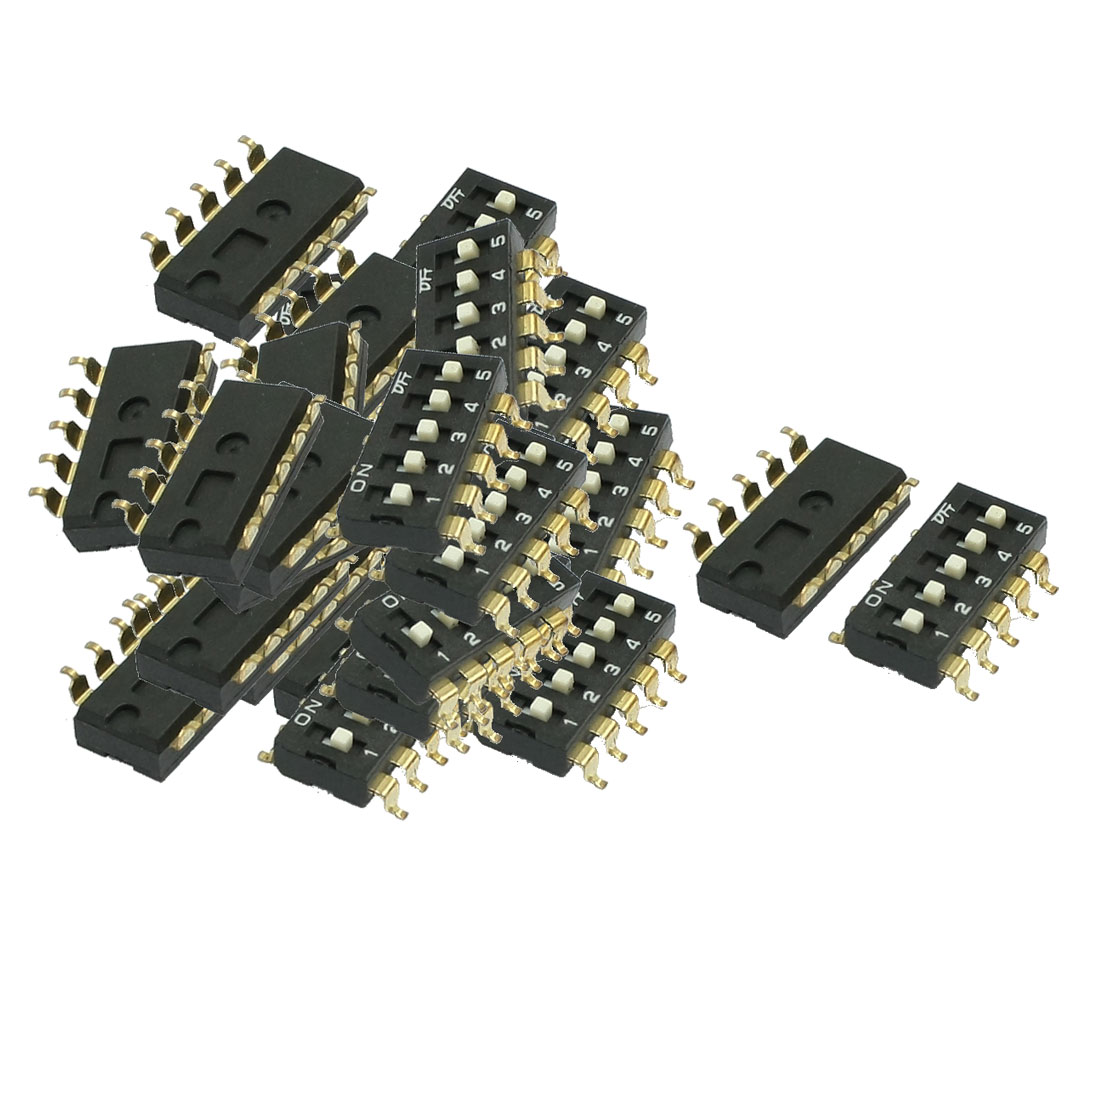 33 Pcs 2.54mm Pitch 5 Position Slide Type DIP Switches Black